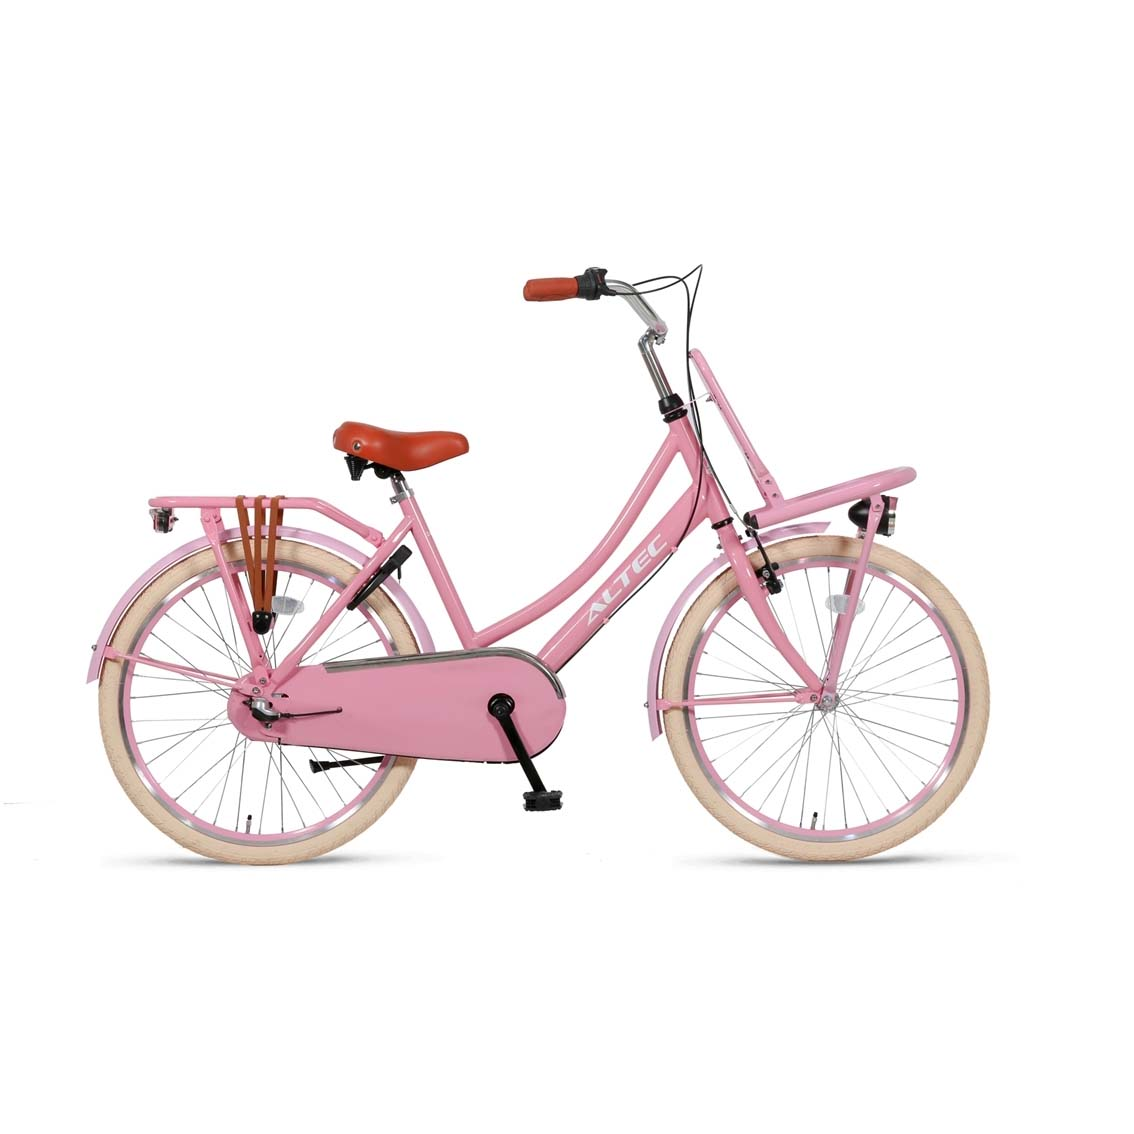 Altec-Dutch-24inch-Transportfiets-Roze-2019 copy